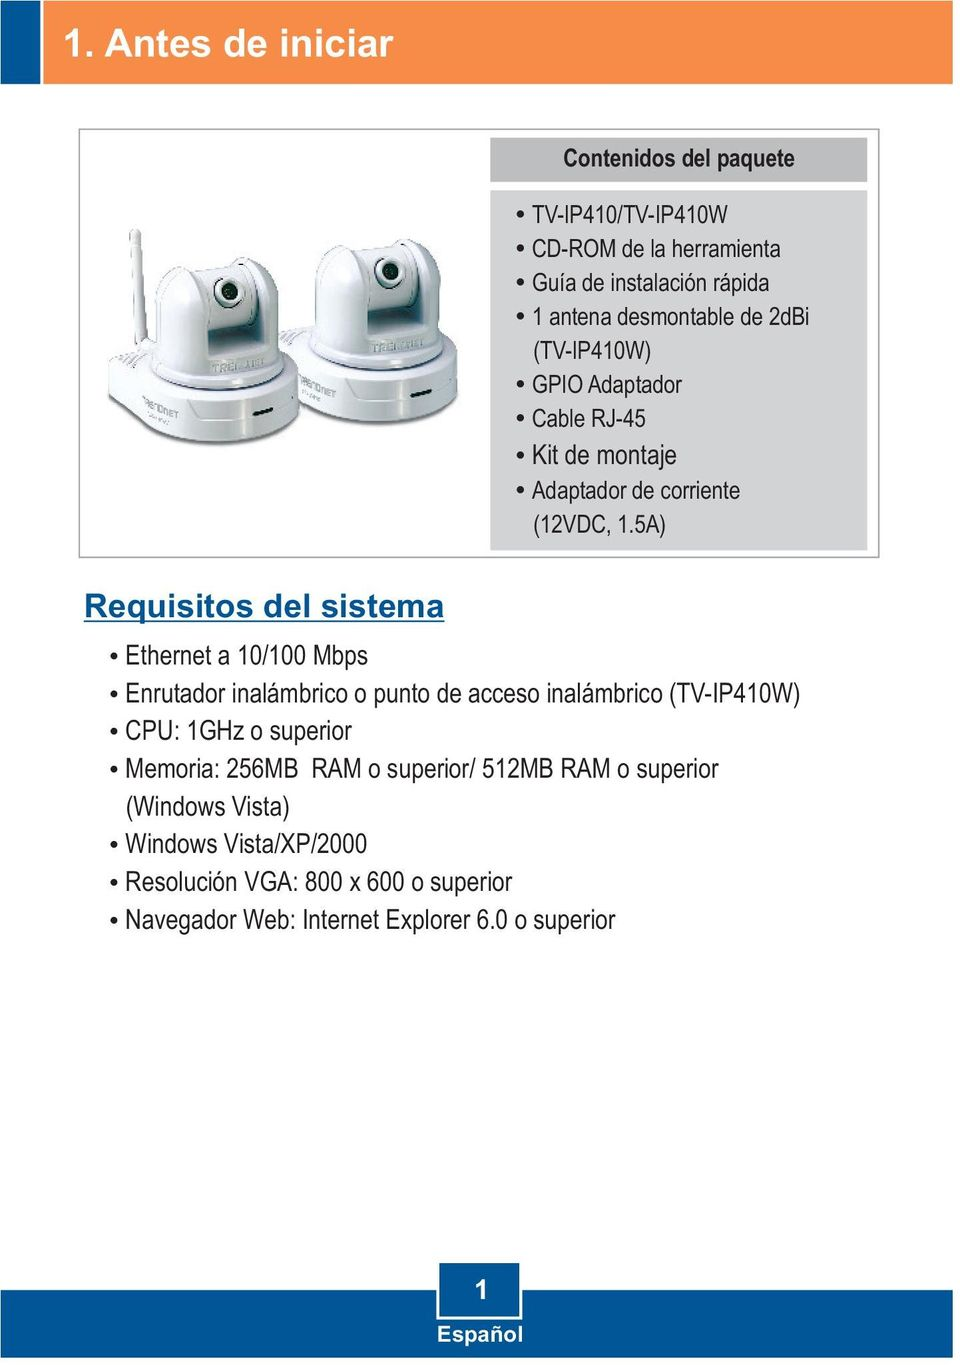 5A) Requisitos del sistema Ethernet a 10/100 Mbps Enrutador inalámbrico o punto de acceso inalámbrico (TV-IP410W) CPU: 1GHz o superior